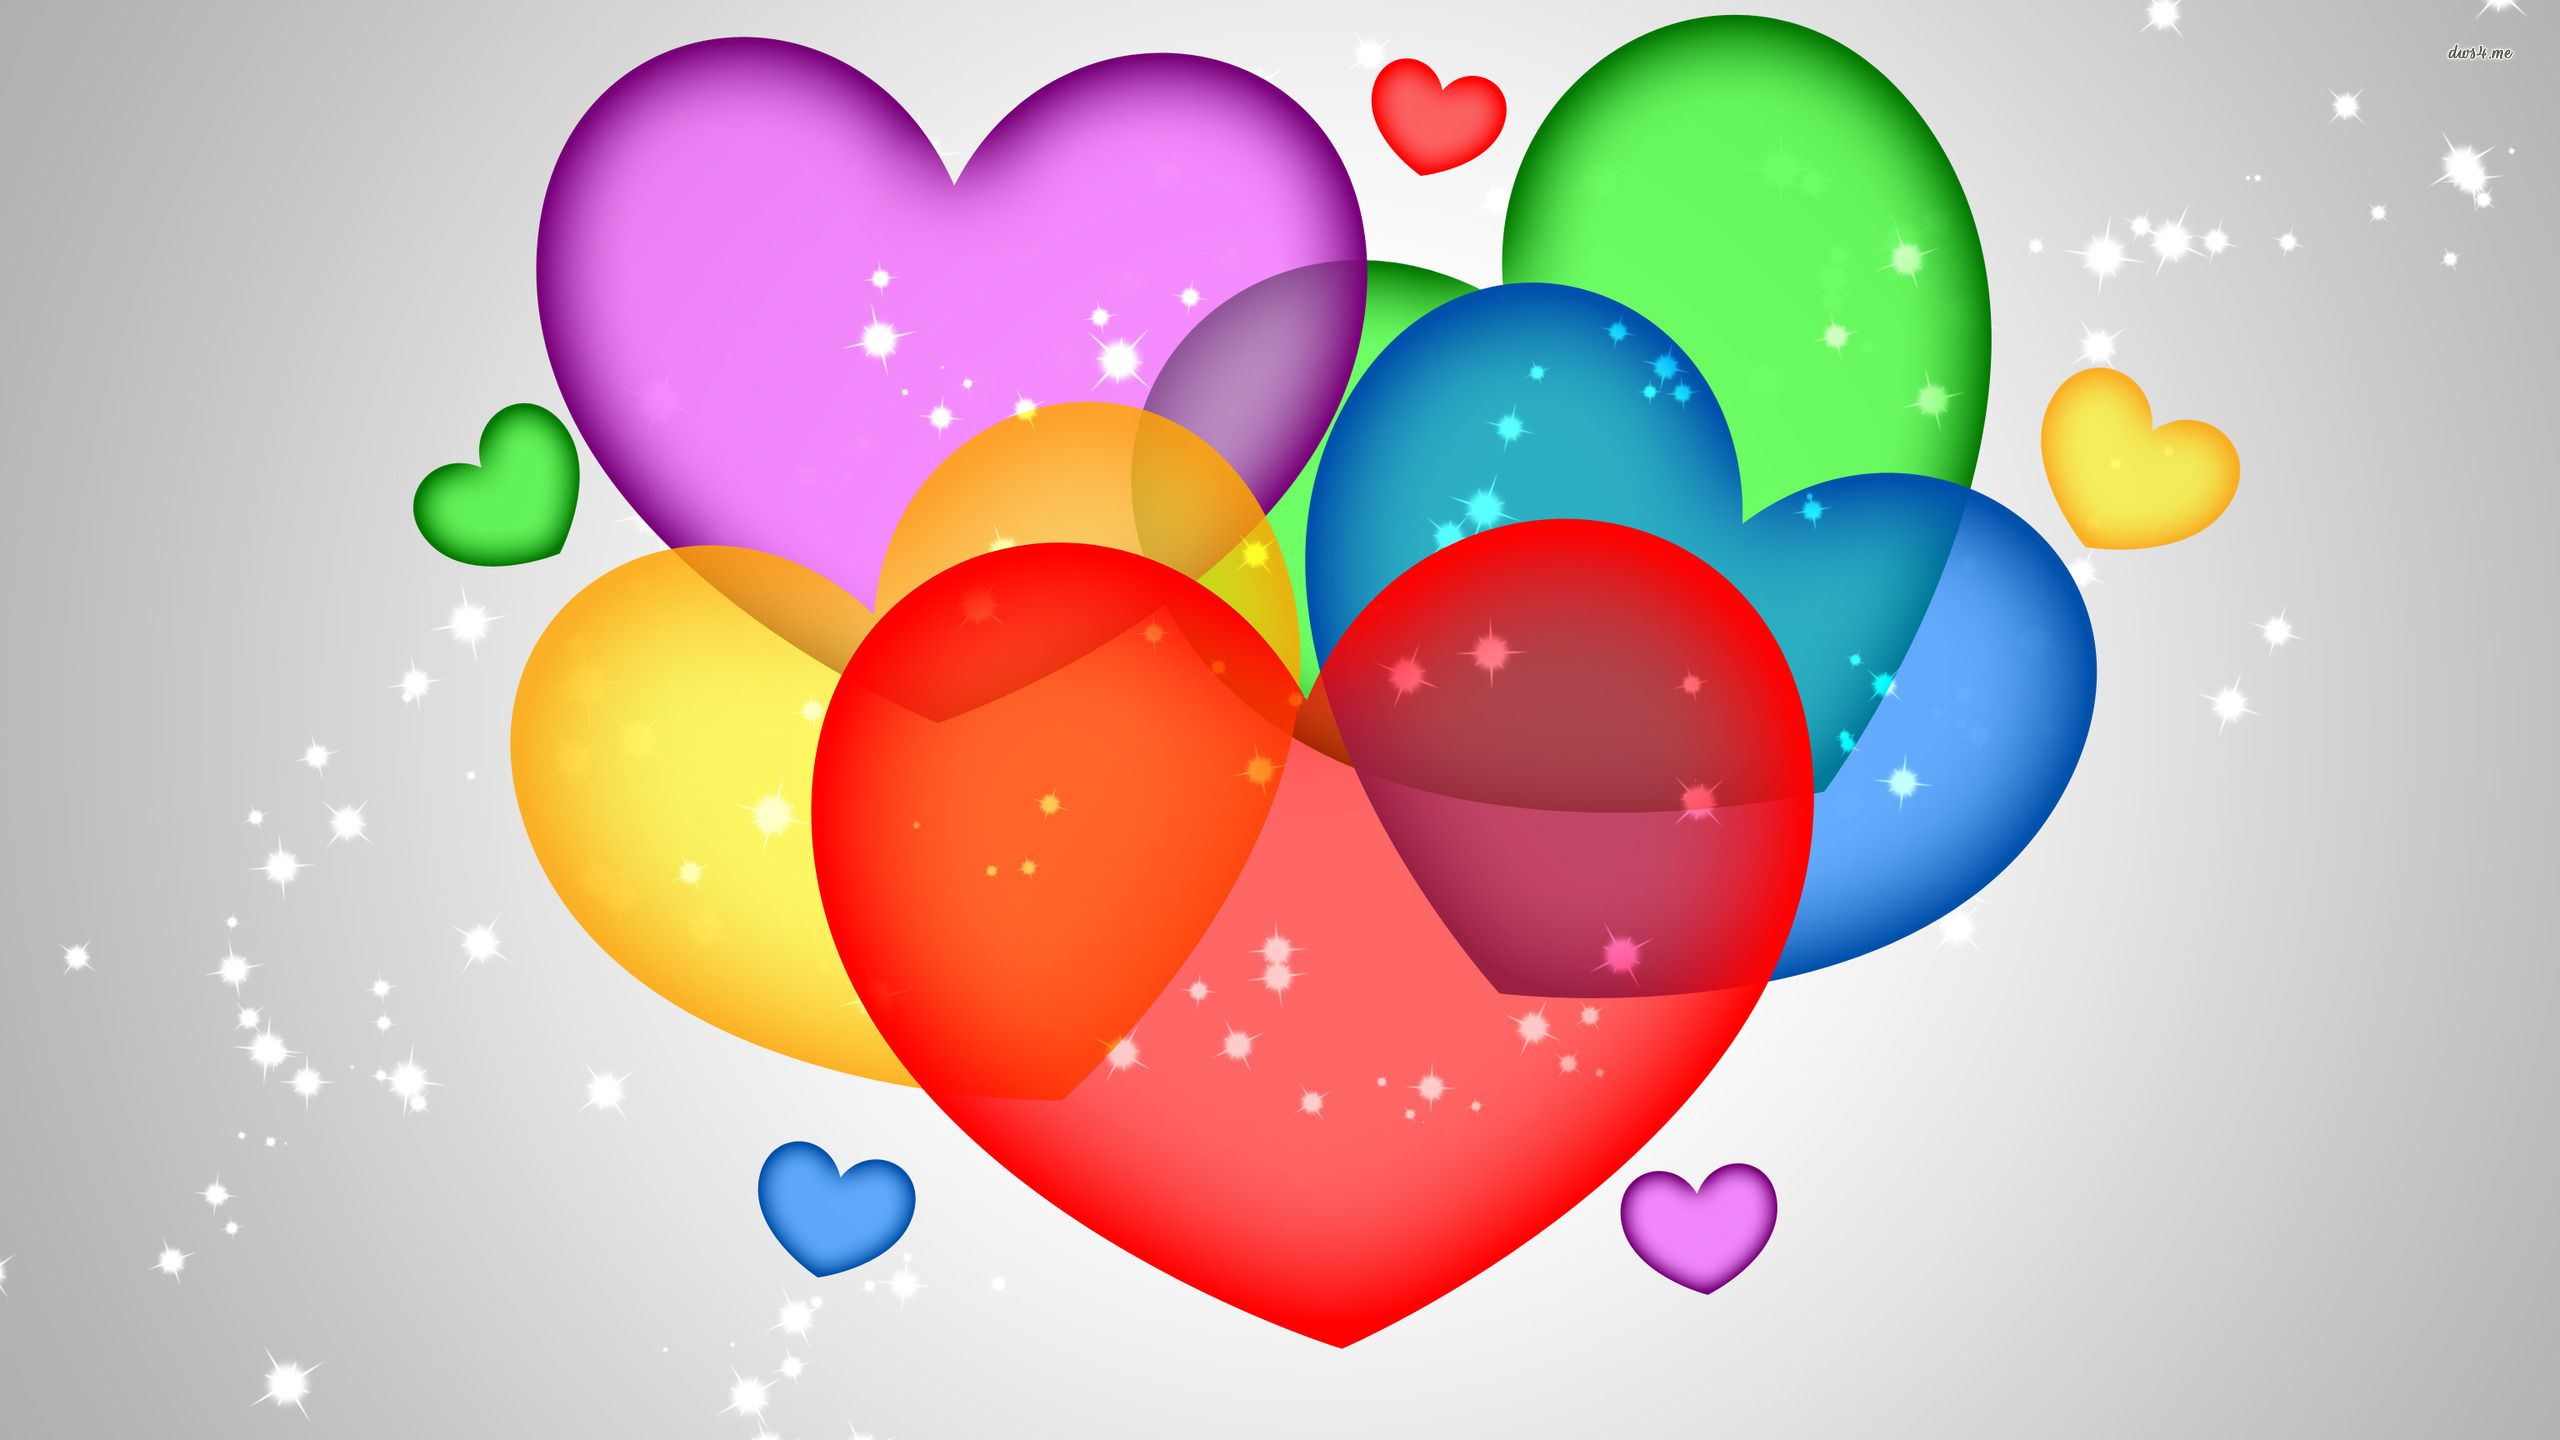 30 Beautiful Love Heart Wallpapers